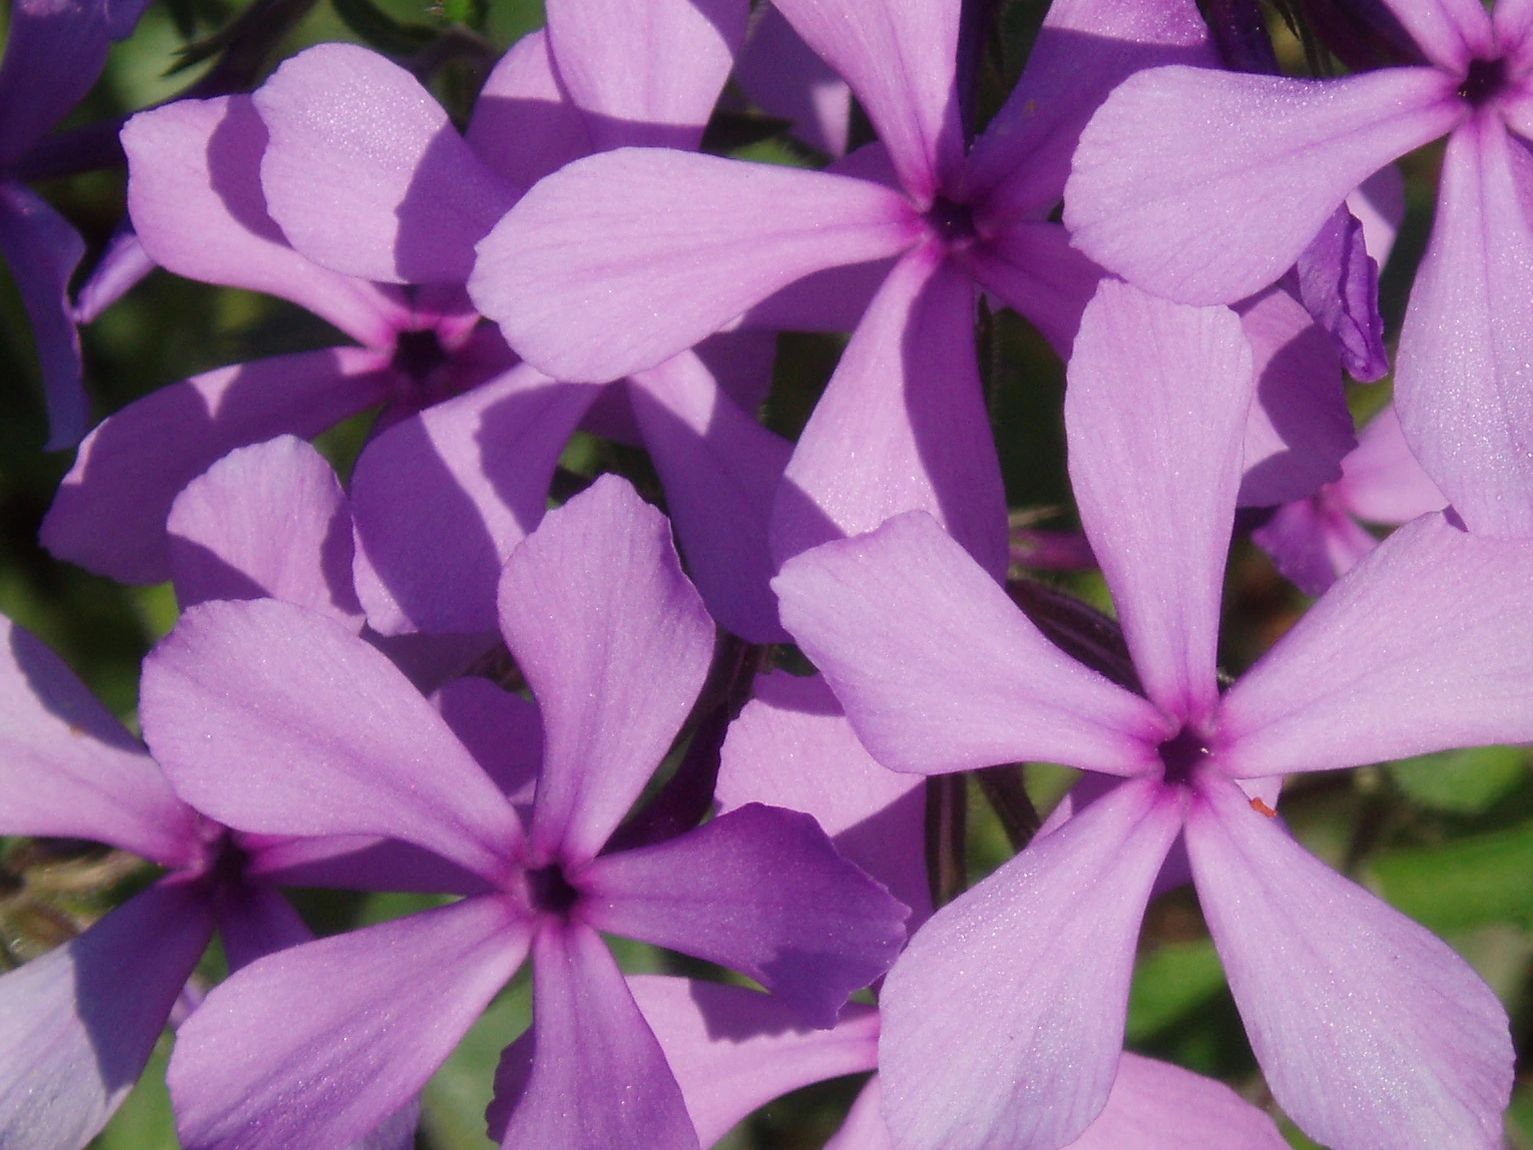 "{""blocks"":[{""key"":""64rps"",""text"":""Phlox divaricata Lapham's Woodland Phlox, Wild Sweet William - potted plants email john@easywildflowers.com"",""type"":""unstyled"",""depth"":0,""inlineStyleRanges"":[],""entityRanges"":[],""data"":{}}],""entityMap"":{}}"